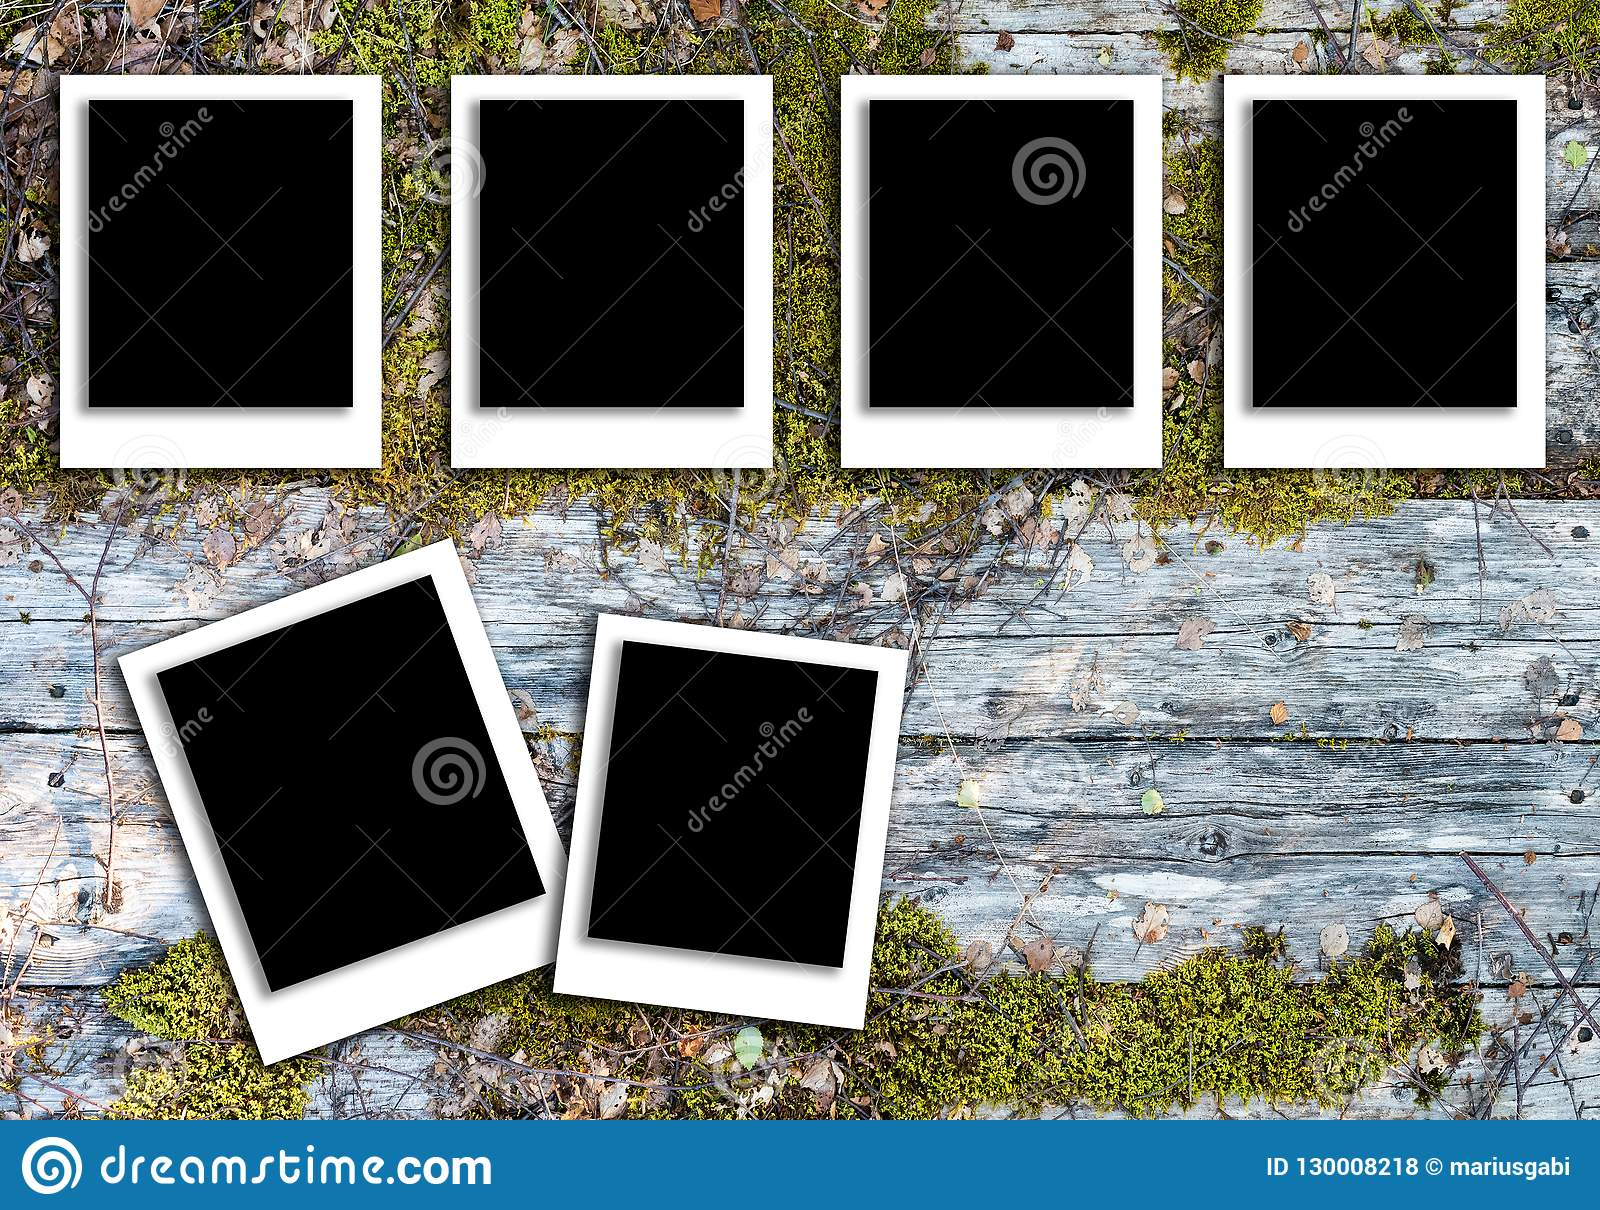 Polaroid Pattern For Photo Frames With Background Texture Stock Photo - Image of card, picture ...